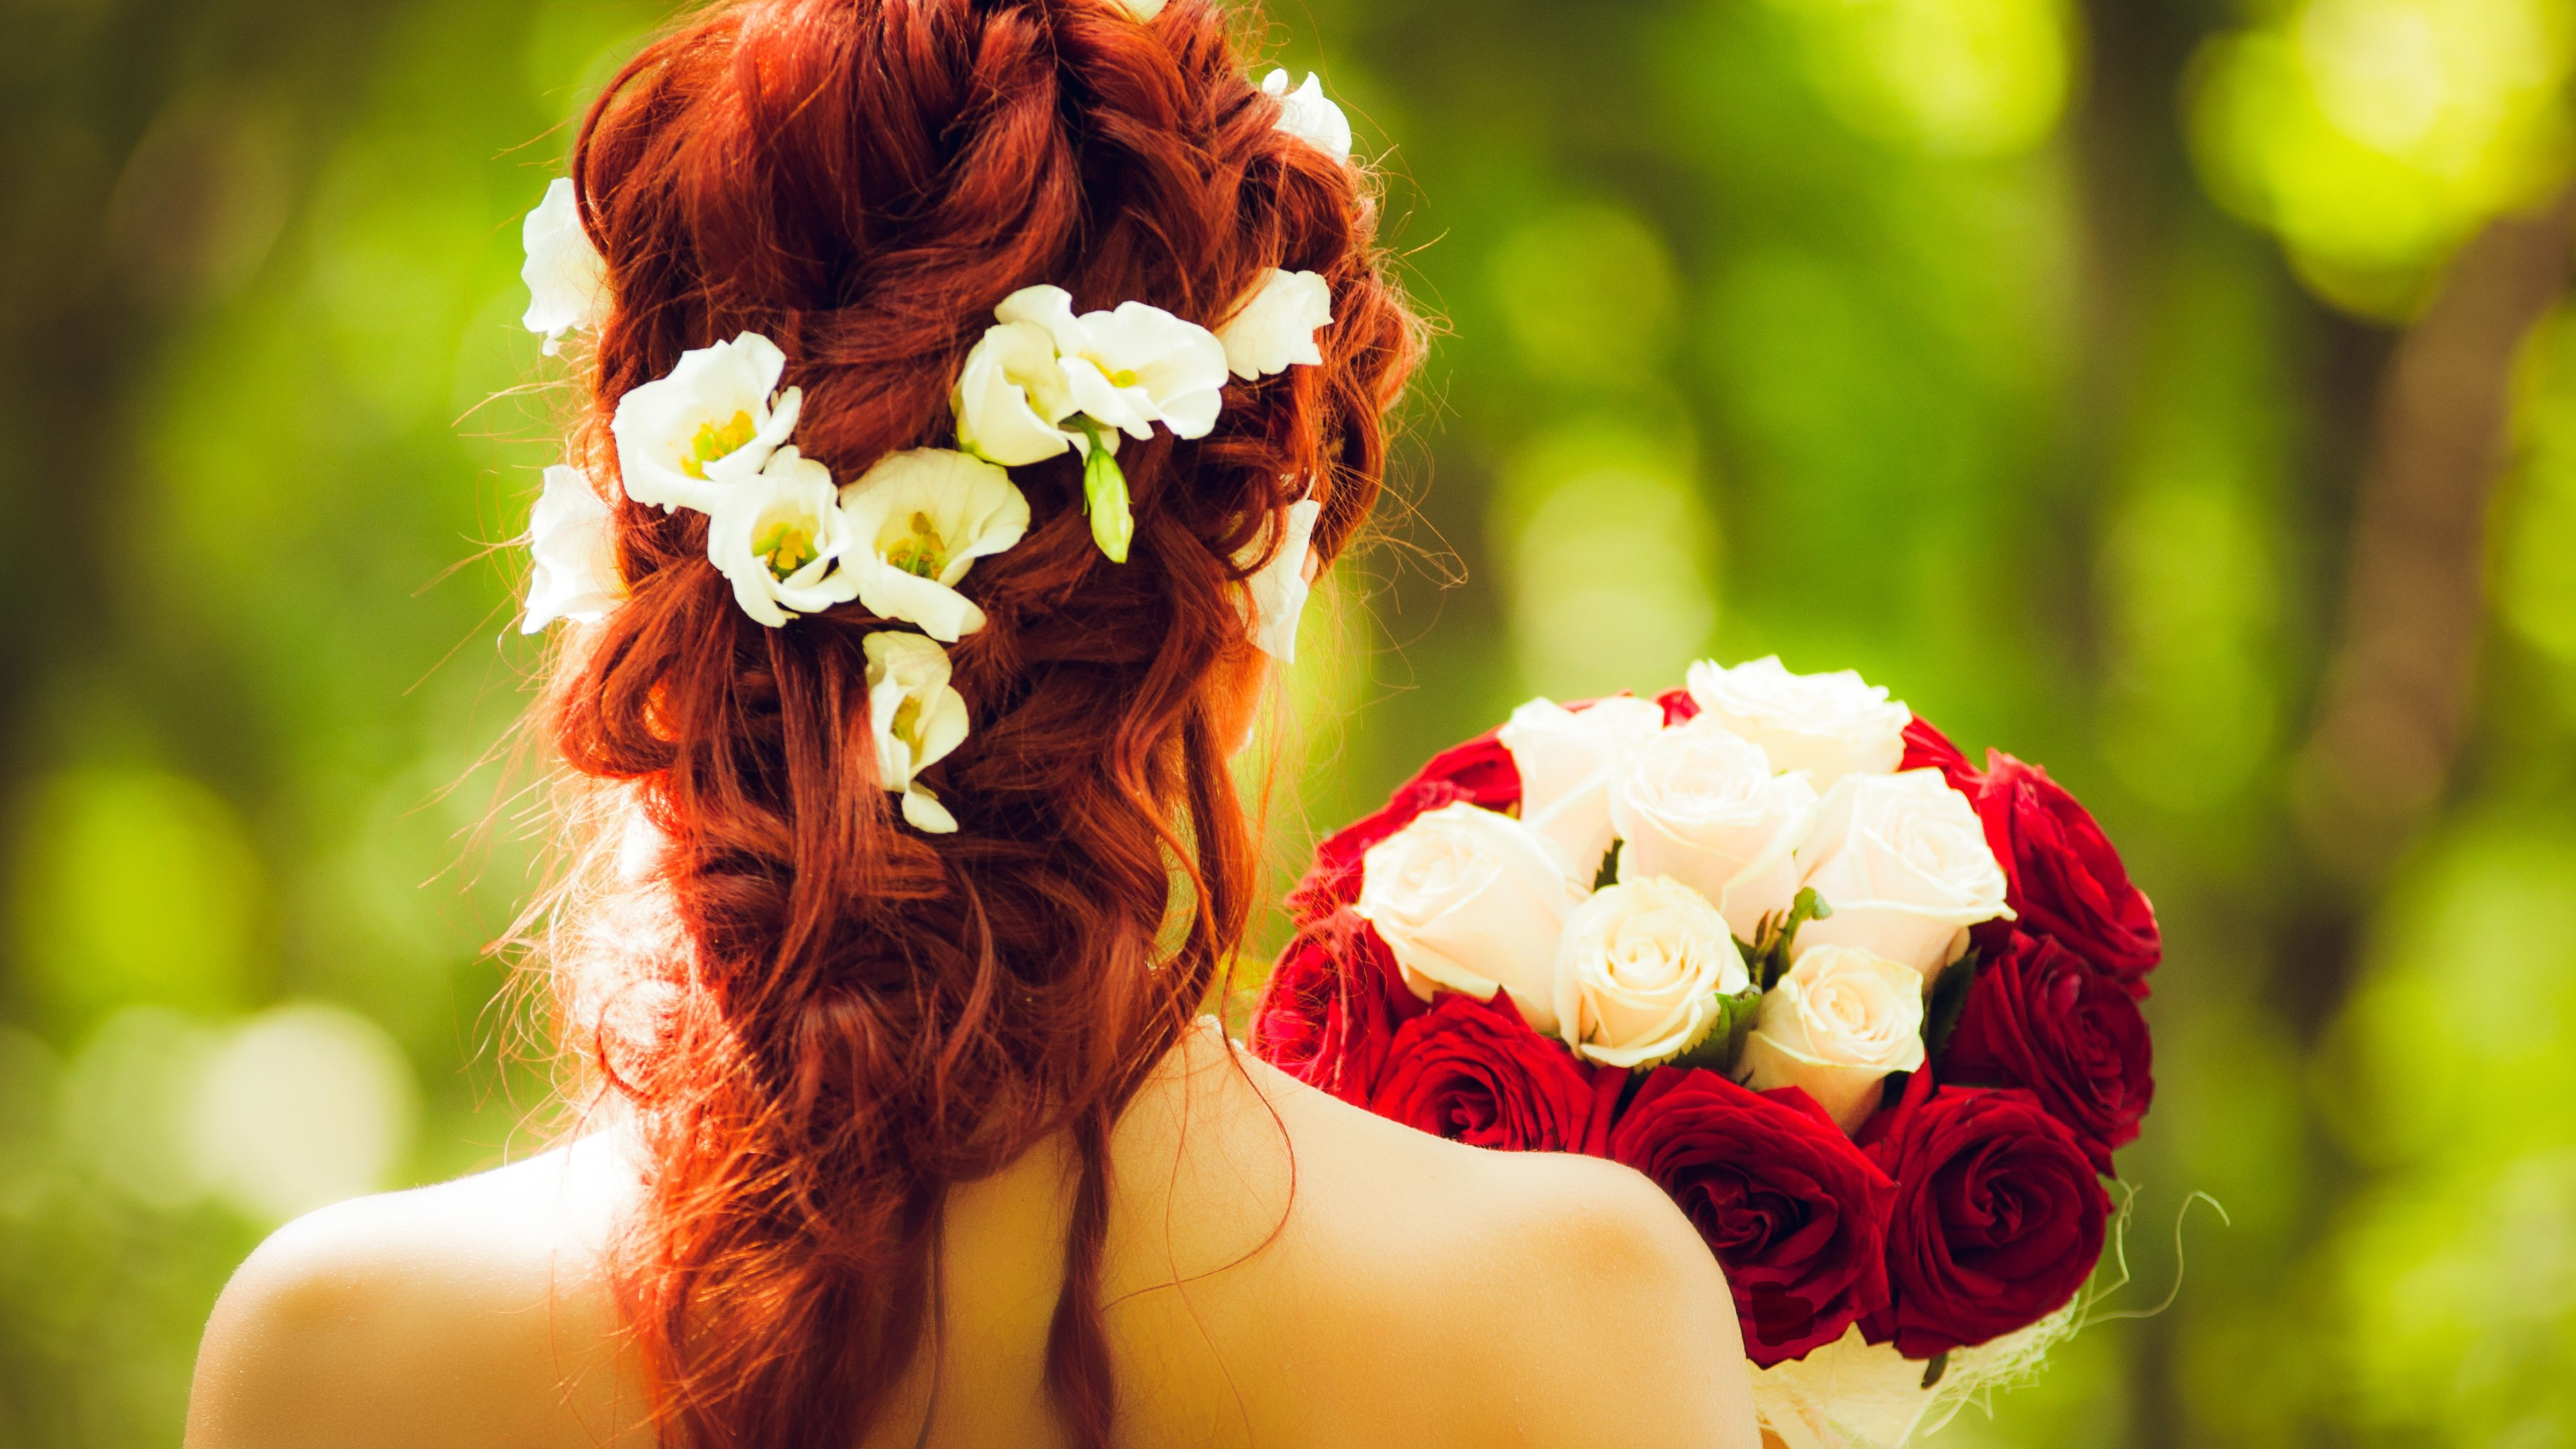 Bride and wedding flowers wallpaper 3840x2160